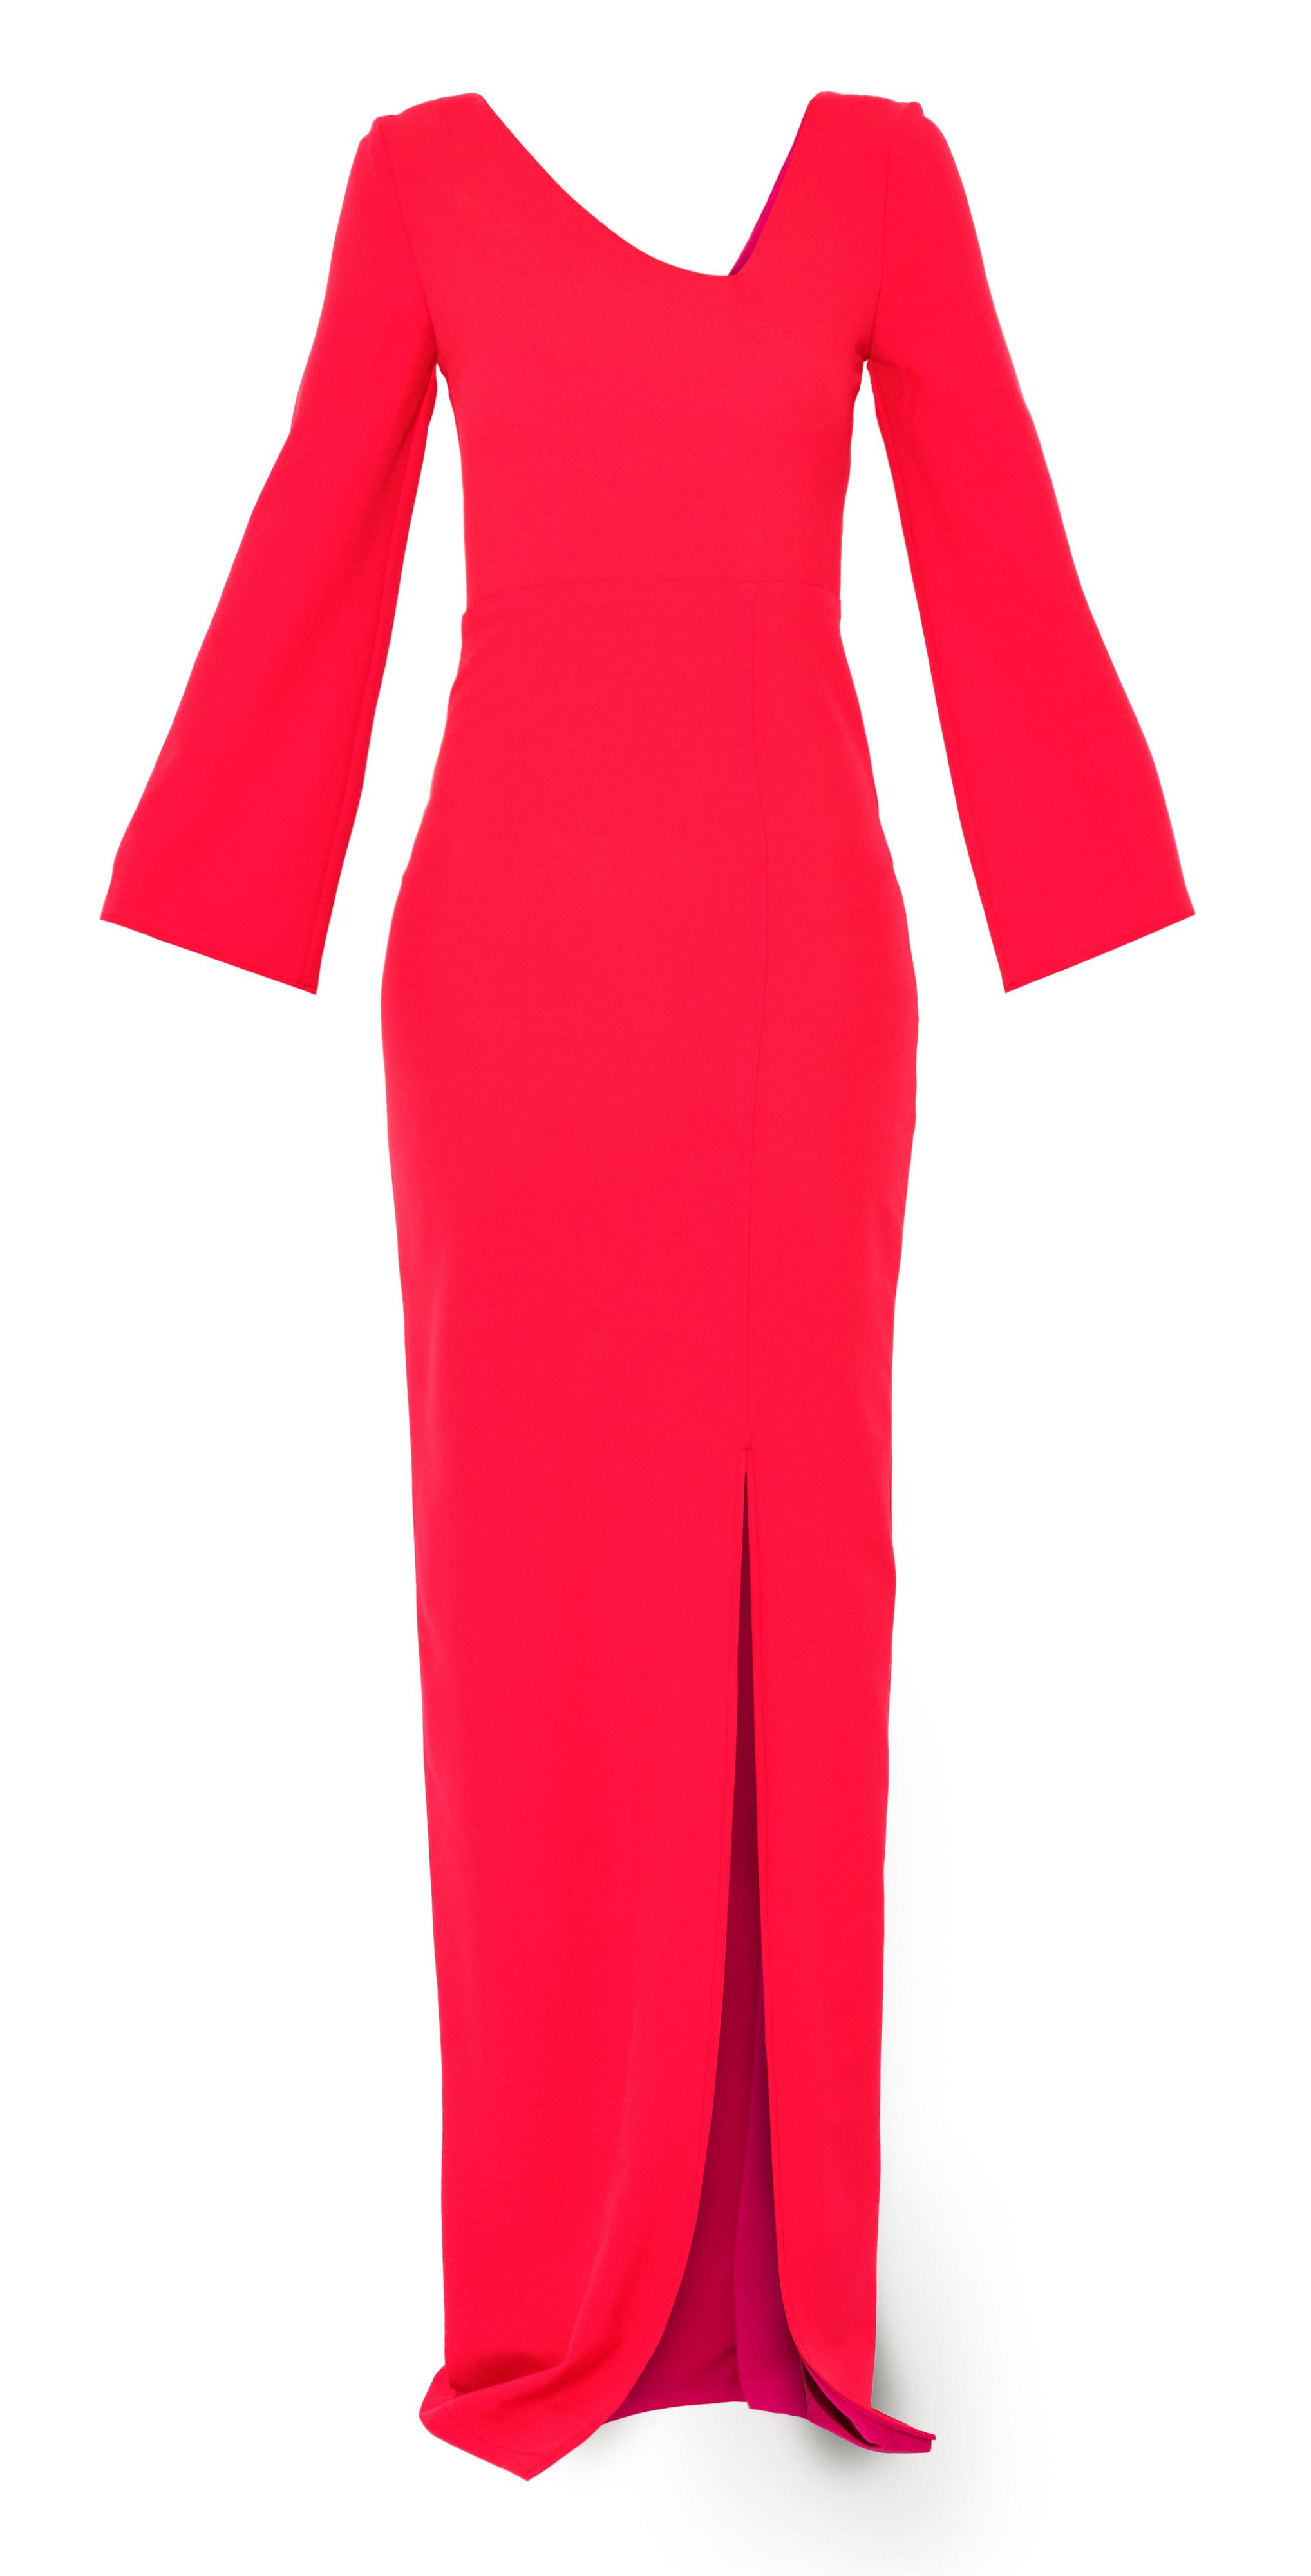 MAIOCCI Collection MAIOCCI Collection Long Evening Dress, Red